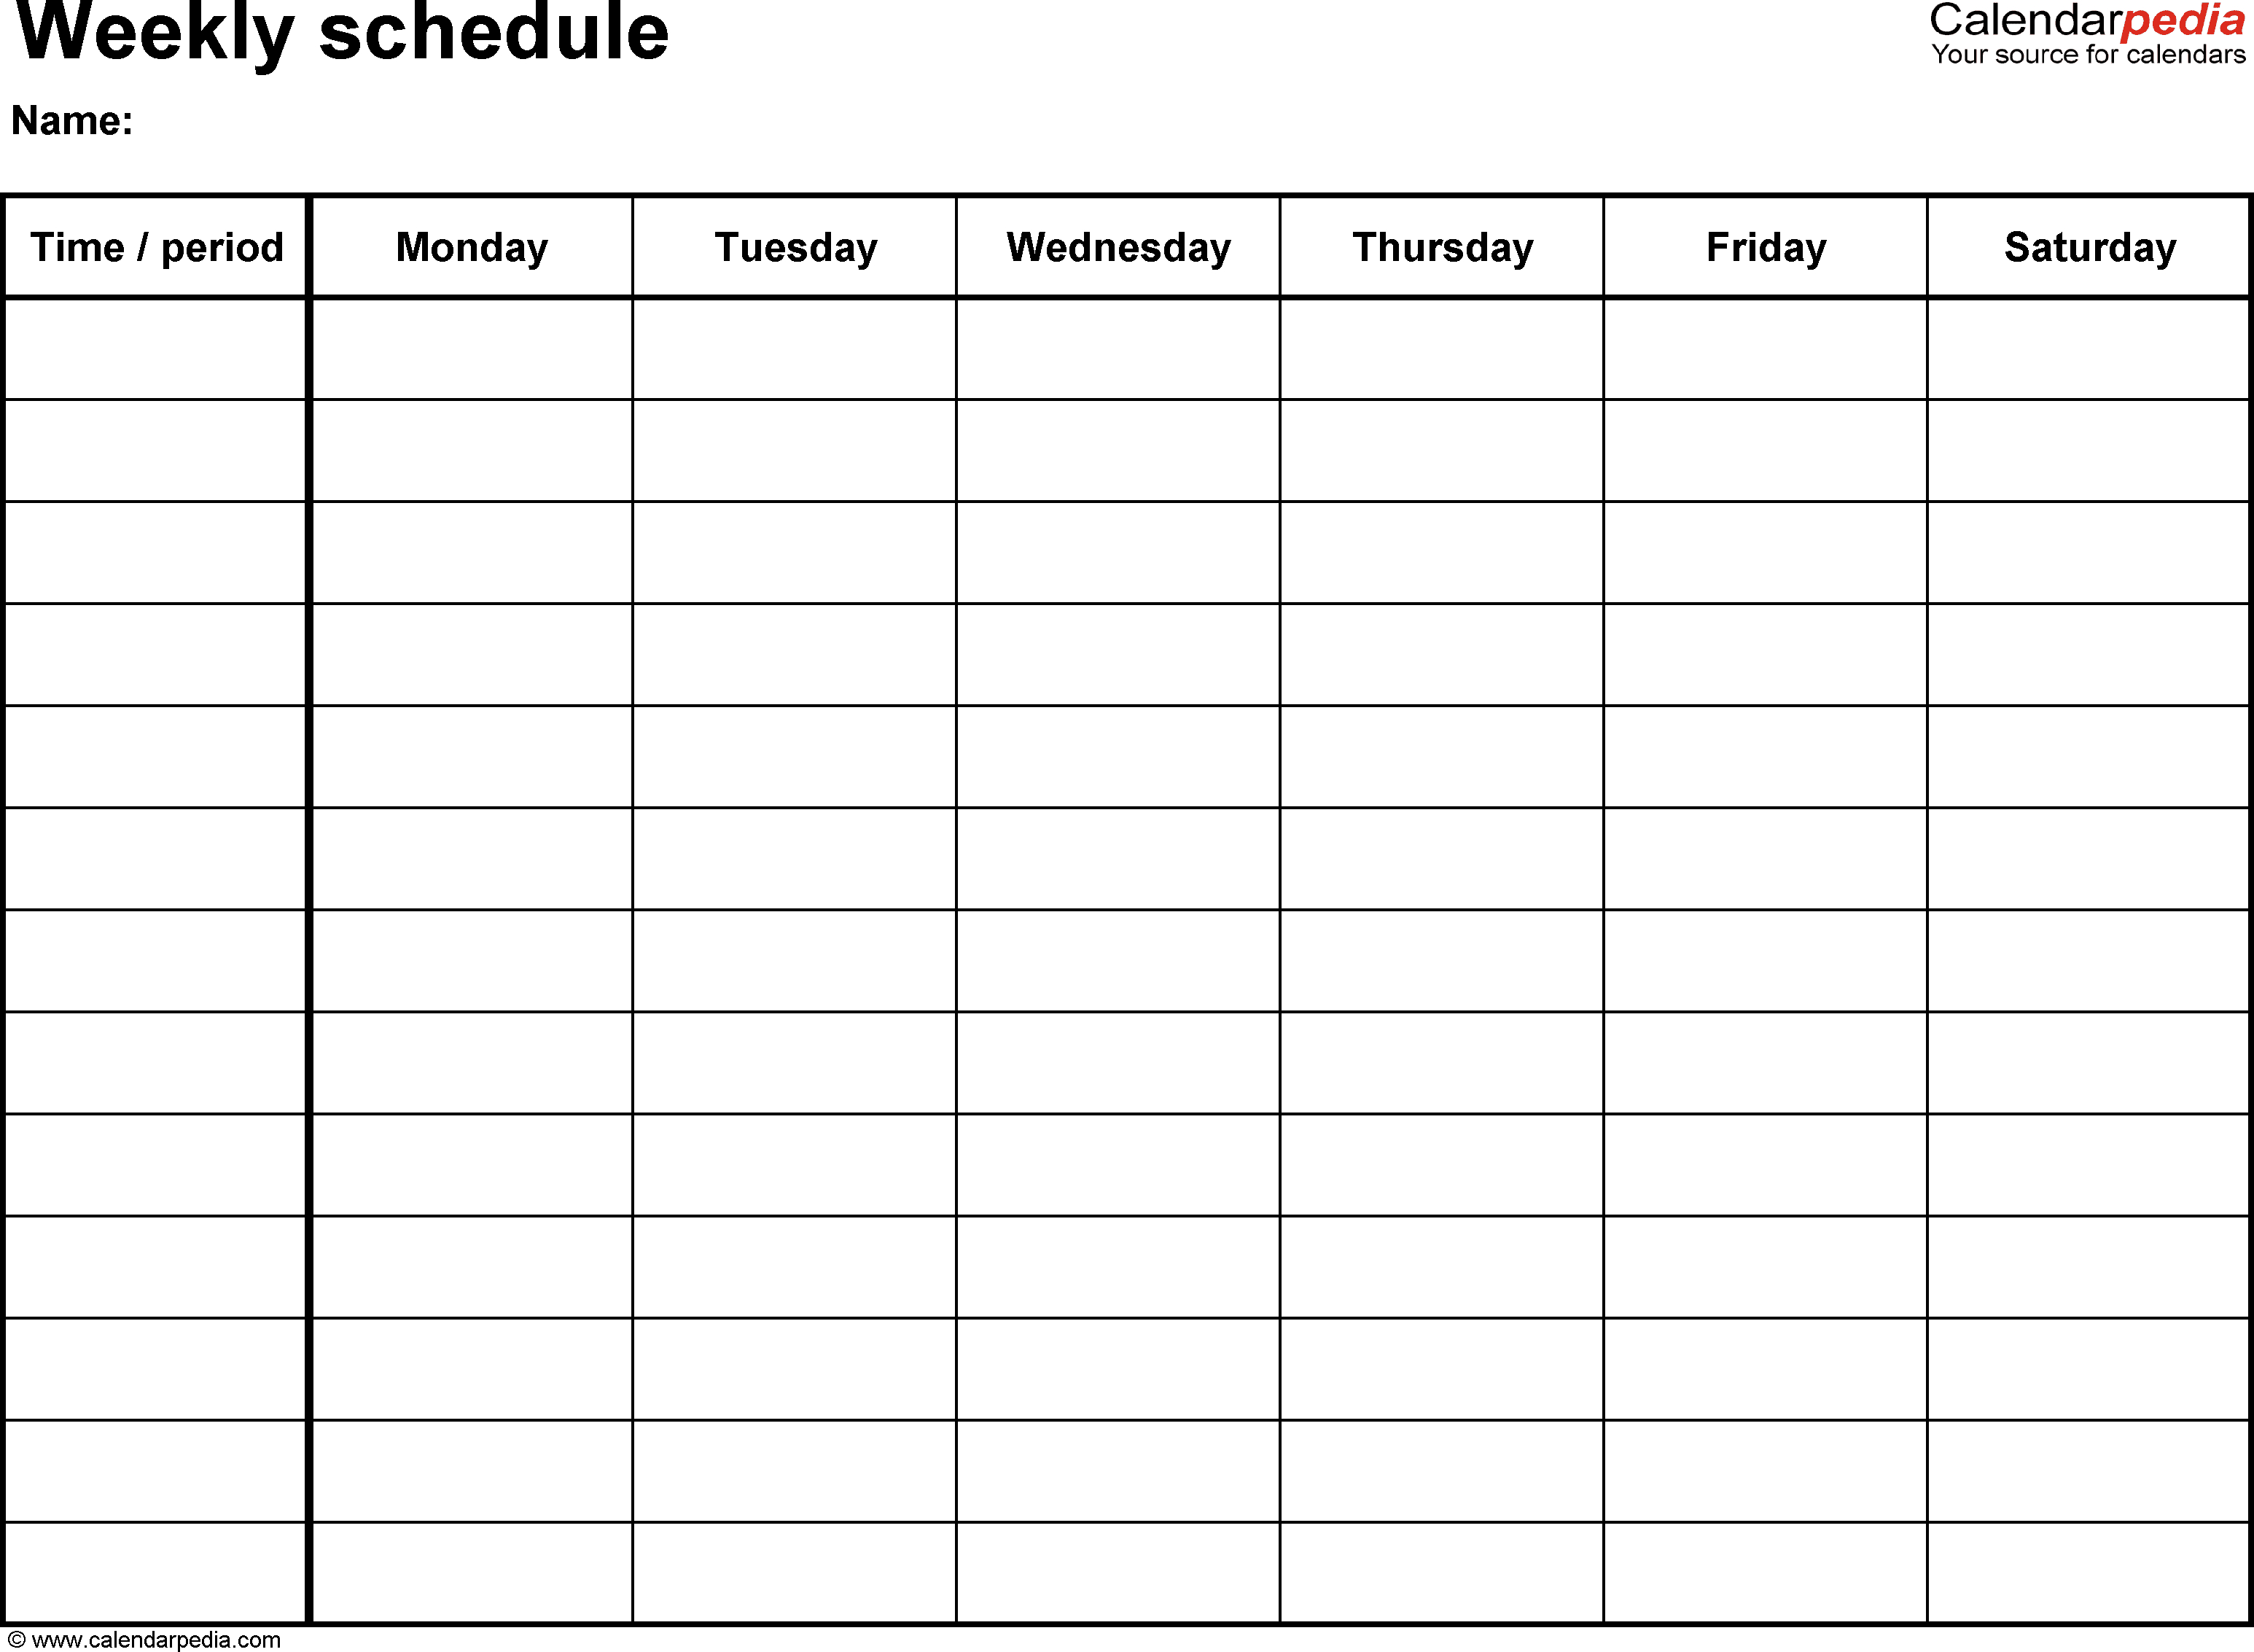 Free Weekly Schedule Templates For Excel   18 Templates Inside Employee Shift Schedule Template Excel